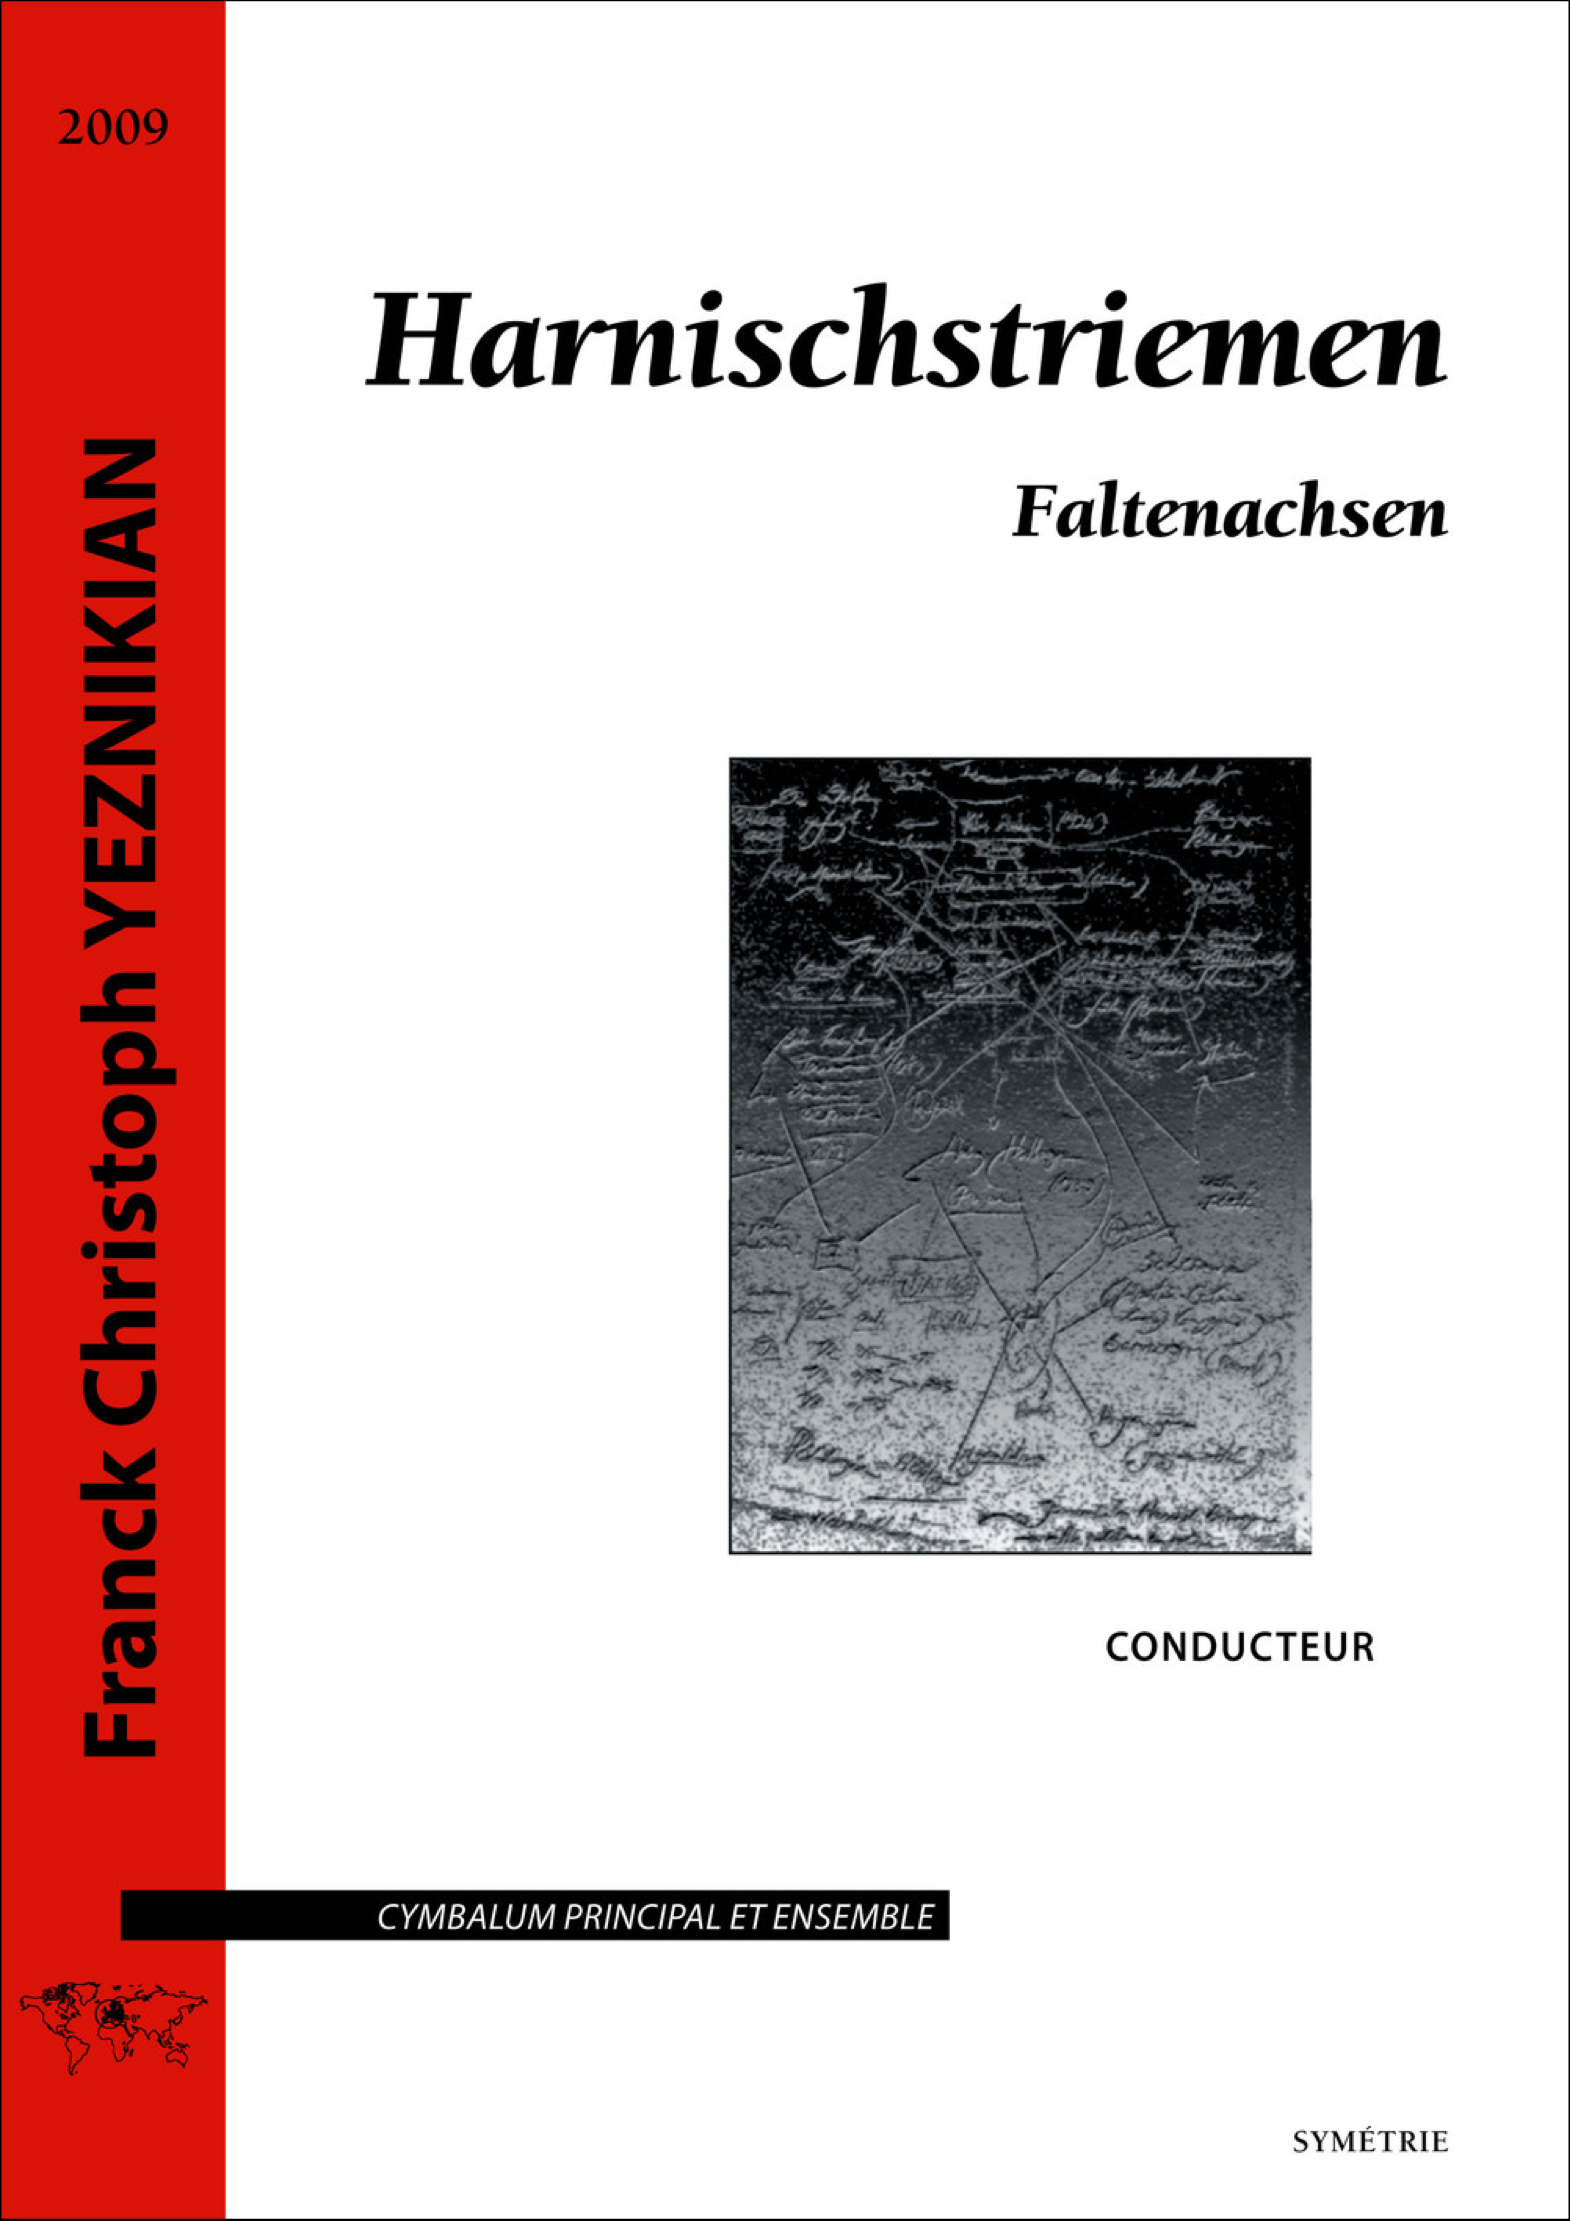 harnischmer conducteur 1 123